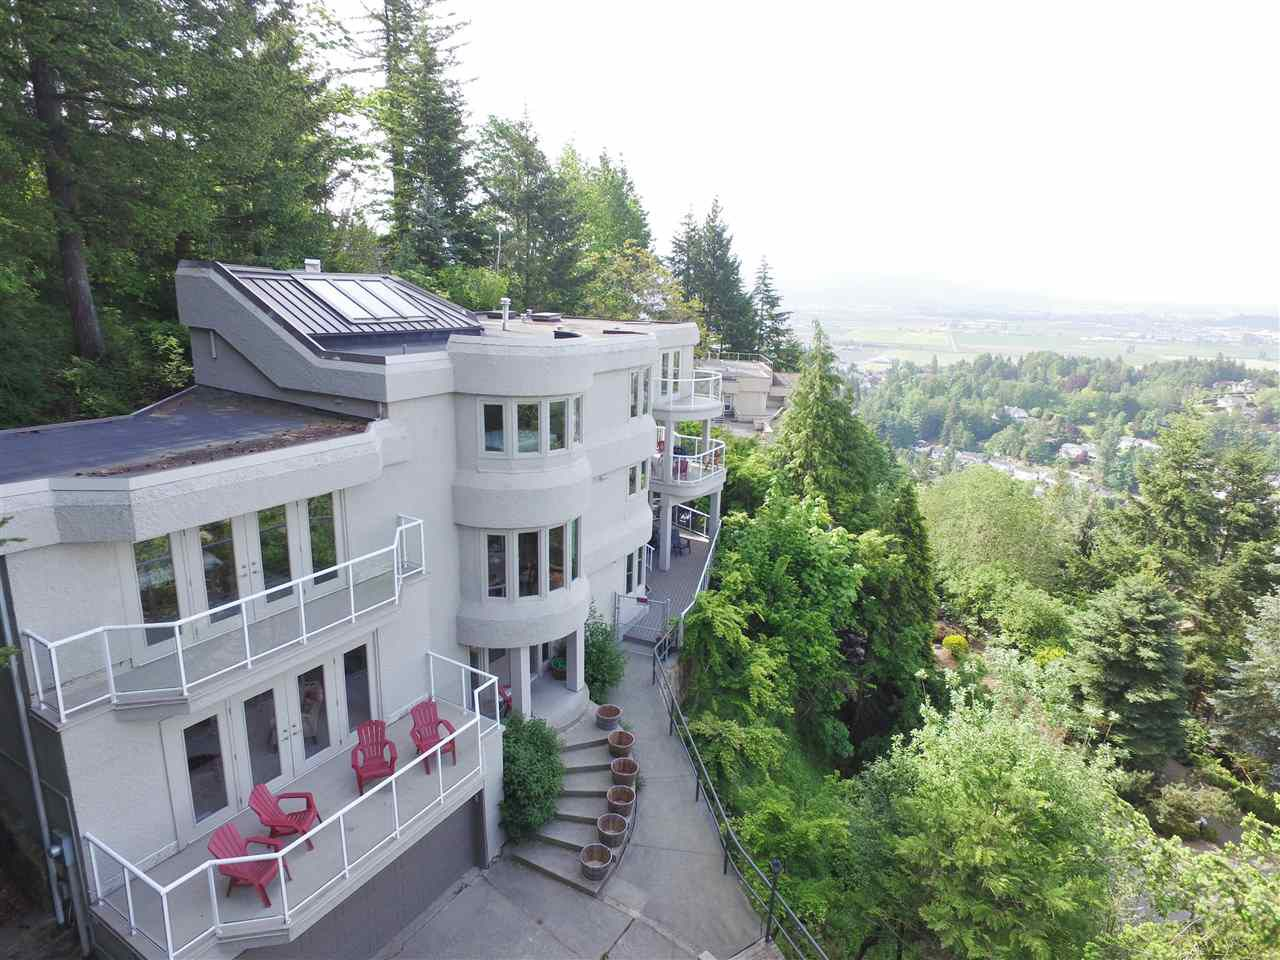 """Main Photo: 2552 ZURICH Drive in Abbotsford: Abbotsford East House for sale in """"Glen Mountain"""" : MLS®# R2369737"""